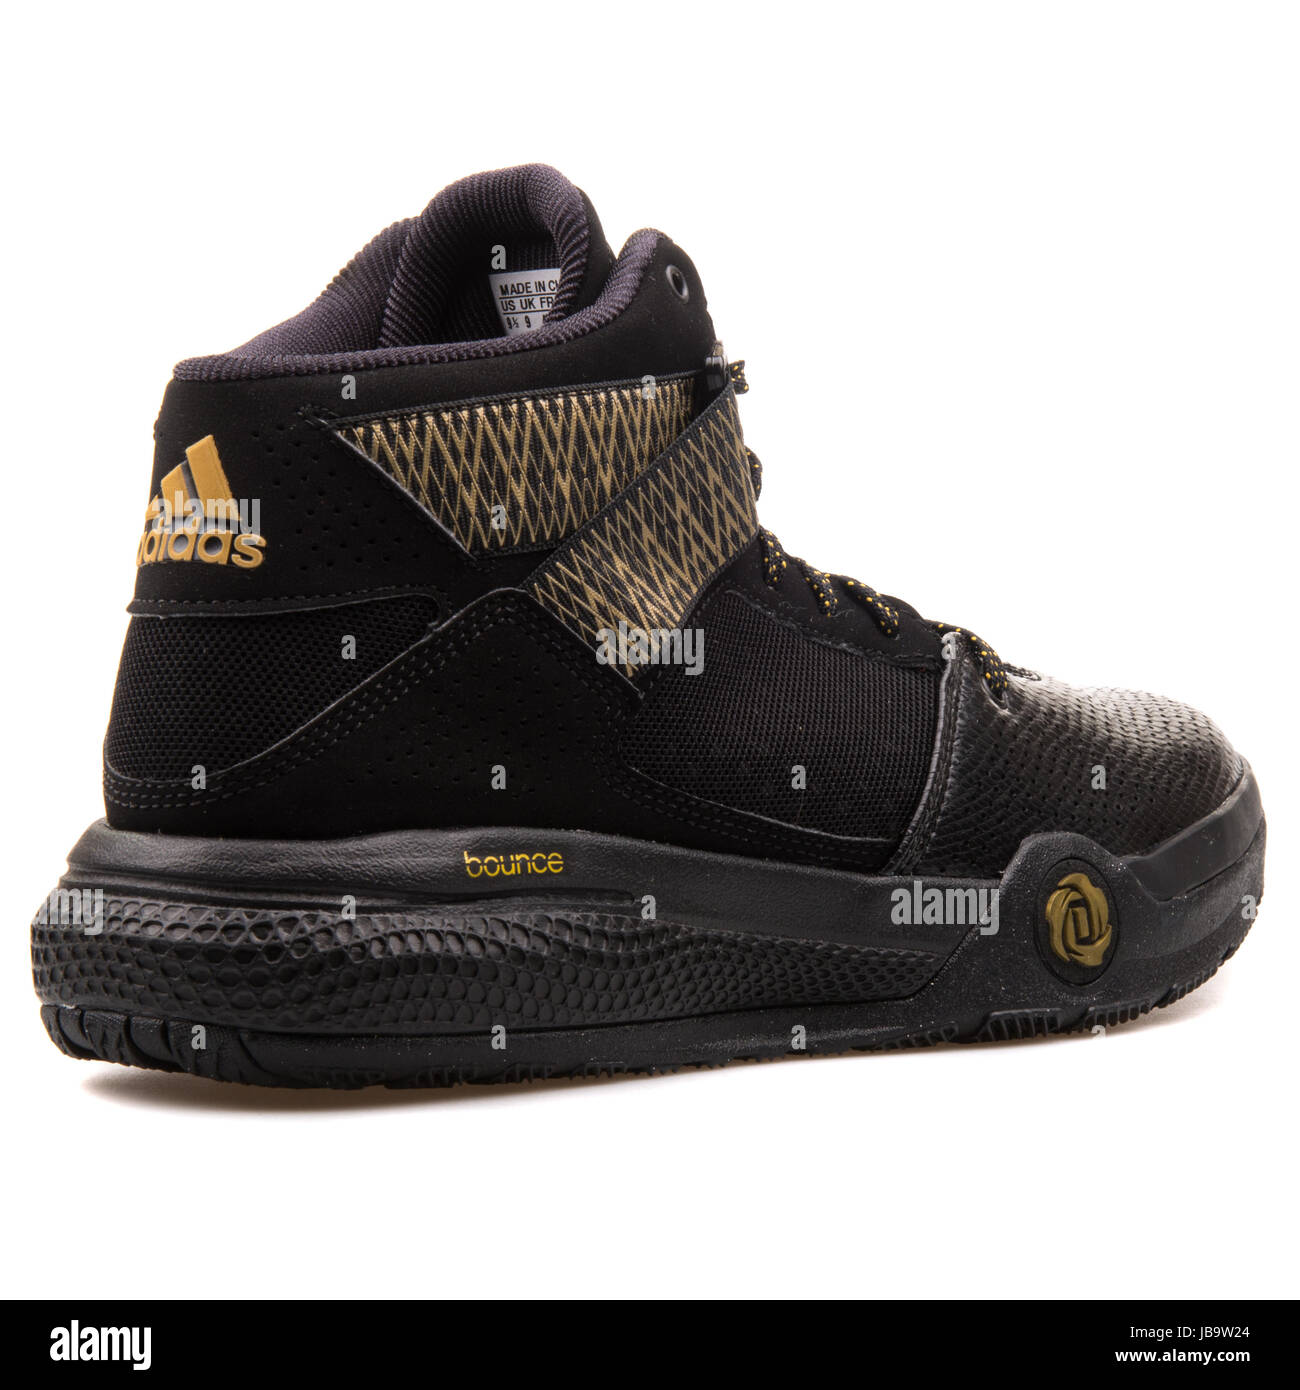 info for 0c65e 77c88 ... Negro y oro rosa adidas zapatos » 4K imágenes 4K fotos Full lowest  price be5fe 653ac ...